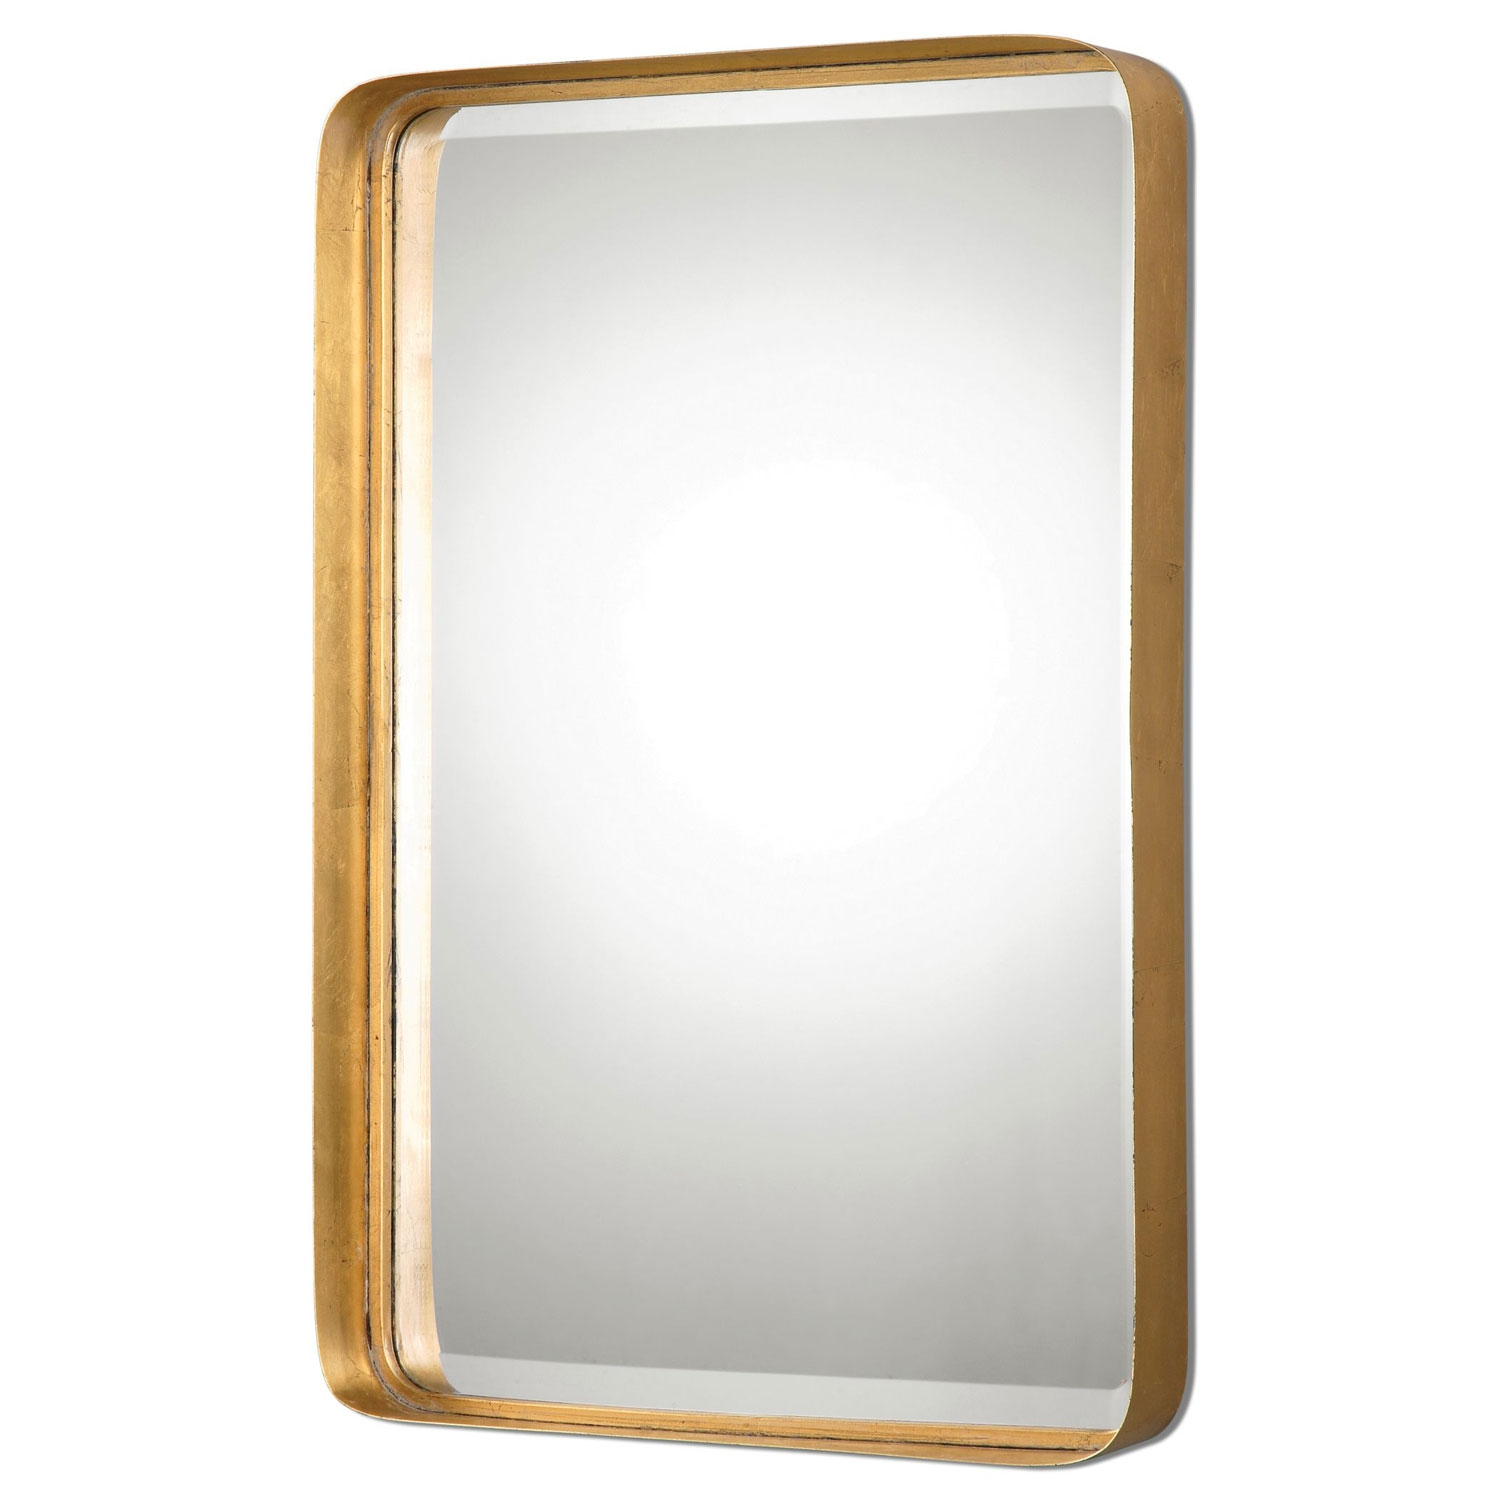 Brass Mirrors For Sale Mirror Ideas